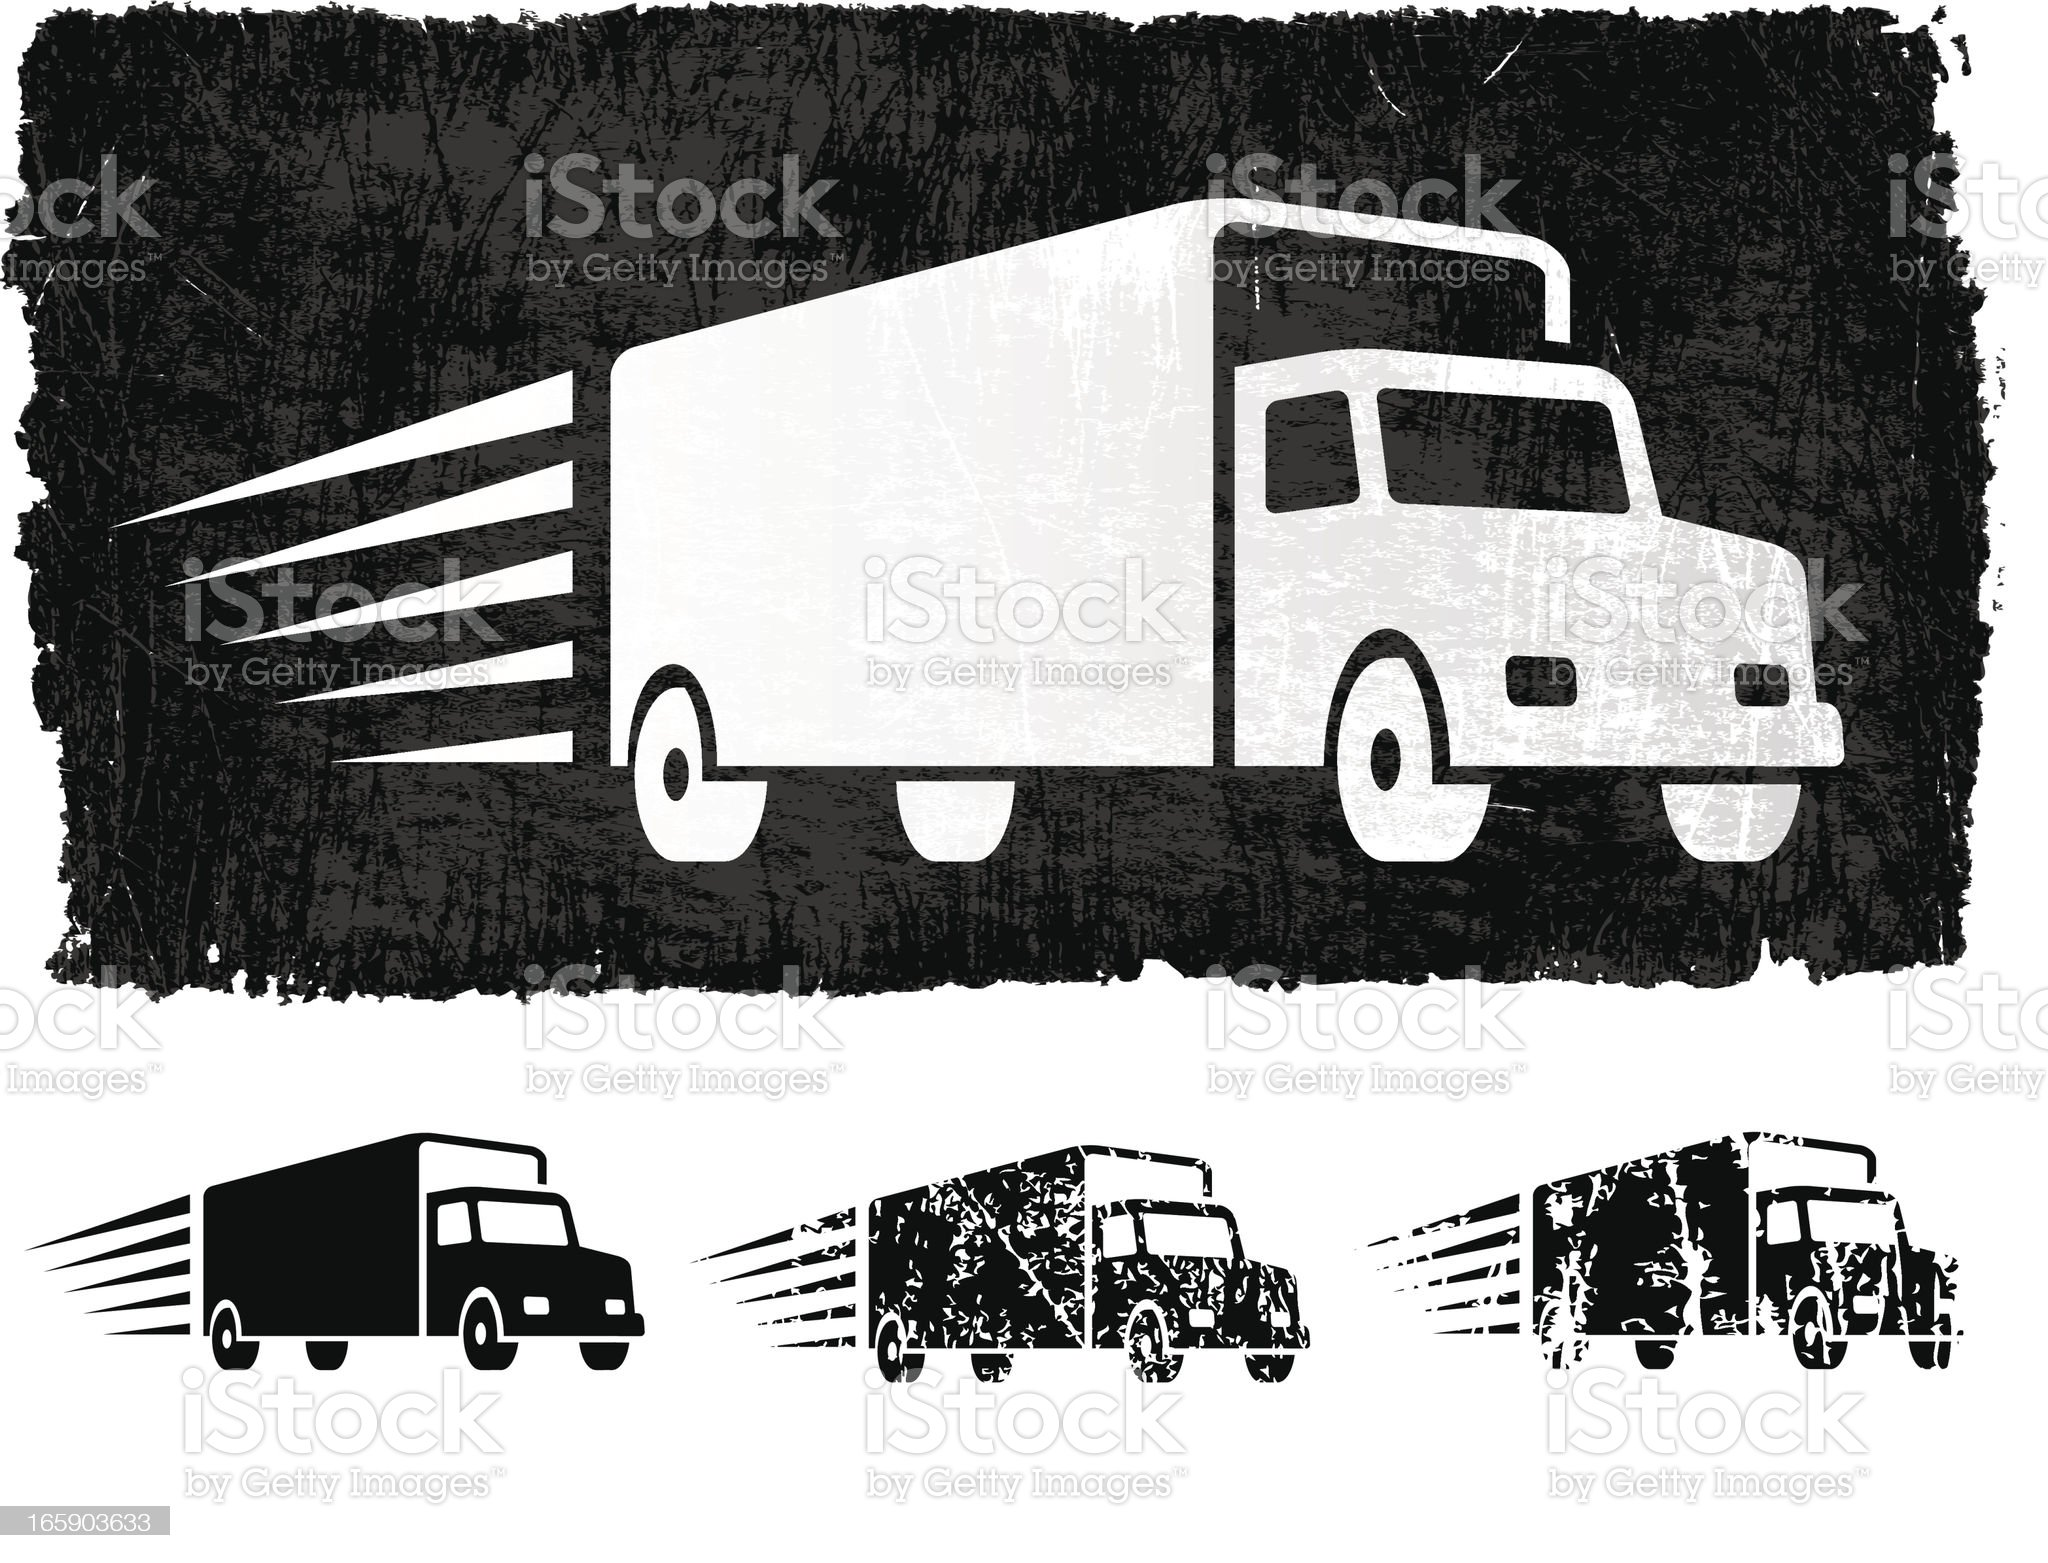 Freight Shipping royalty free vector Background royalty-free stock vector art